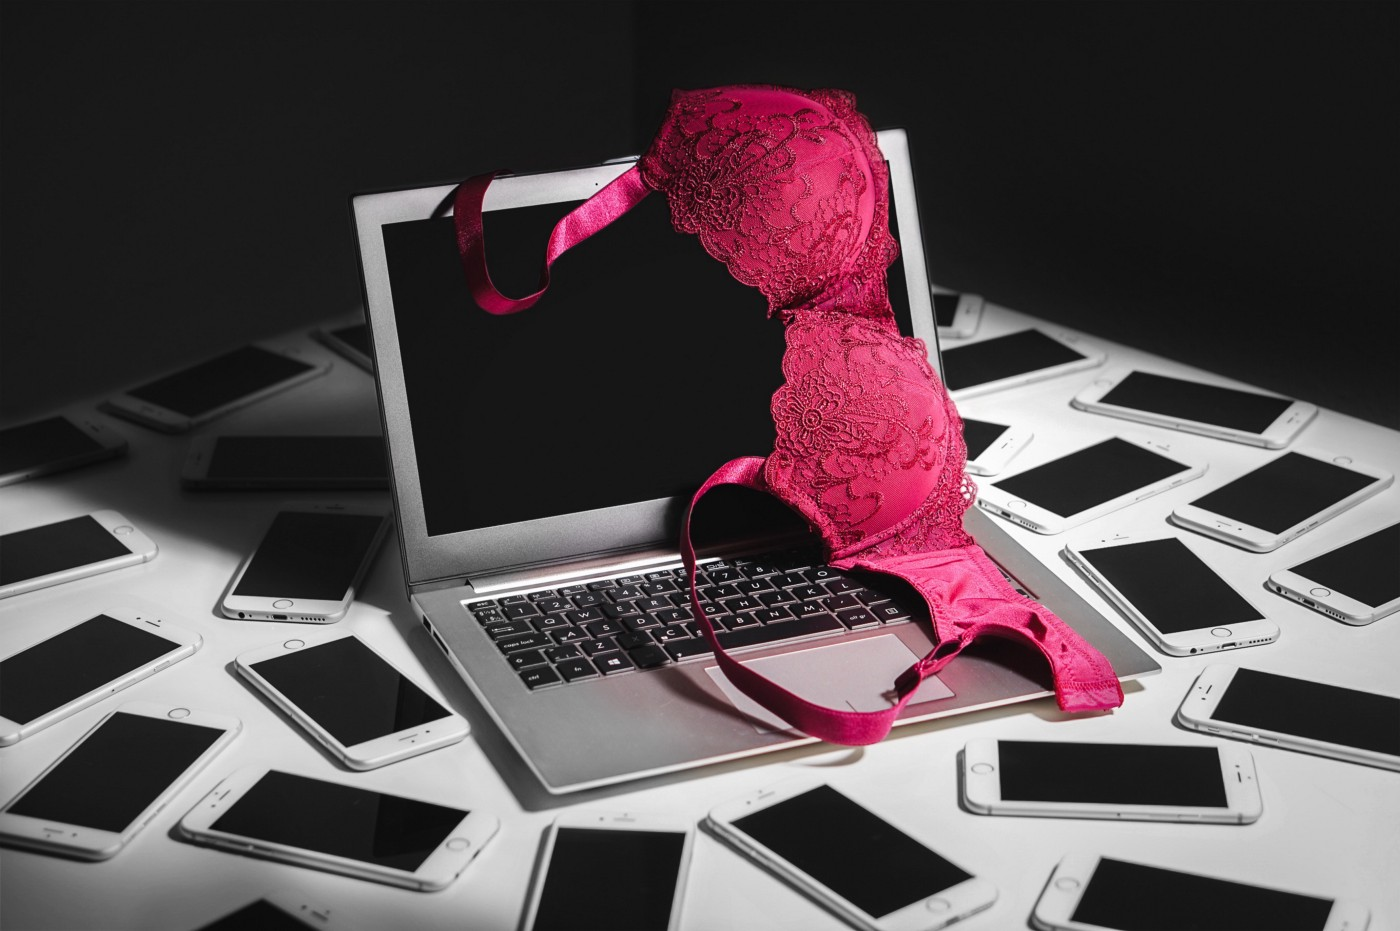 Sex education is the key to protect ourselves online and offline